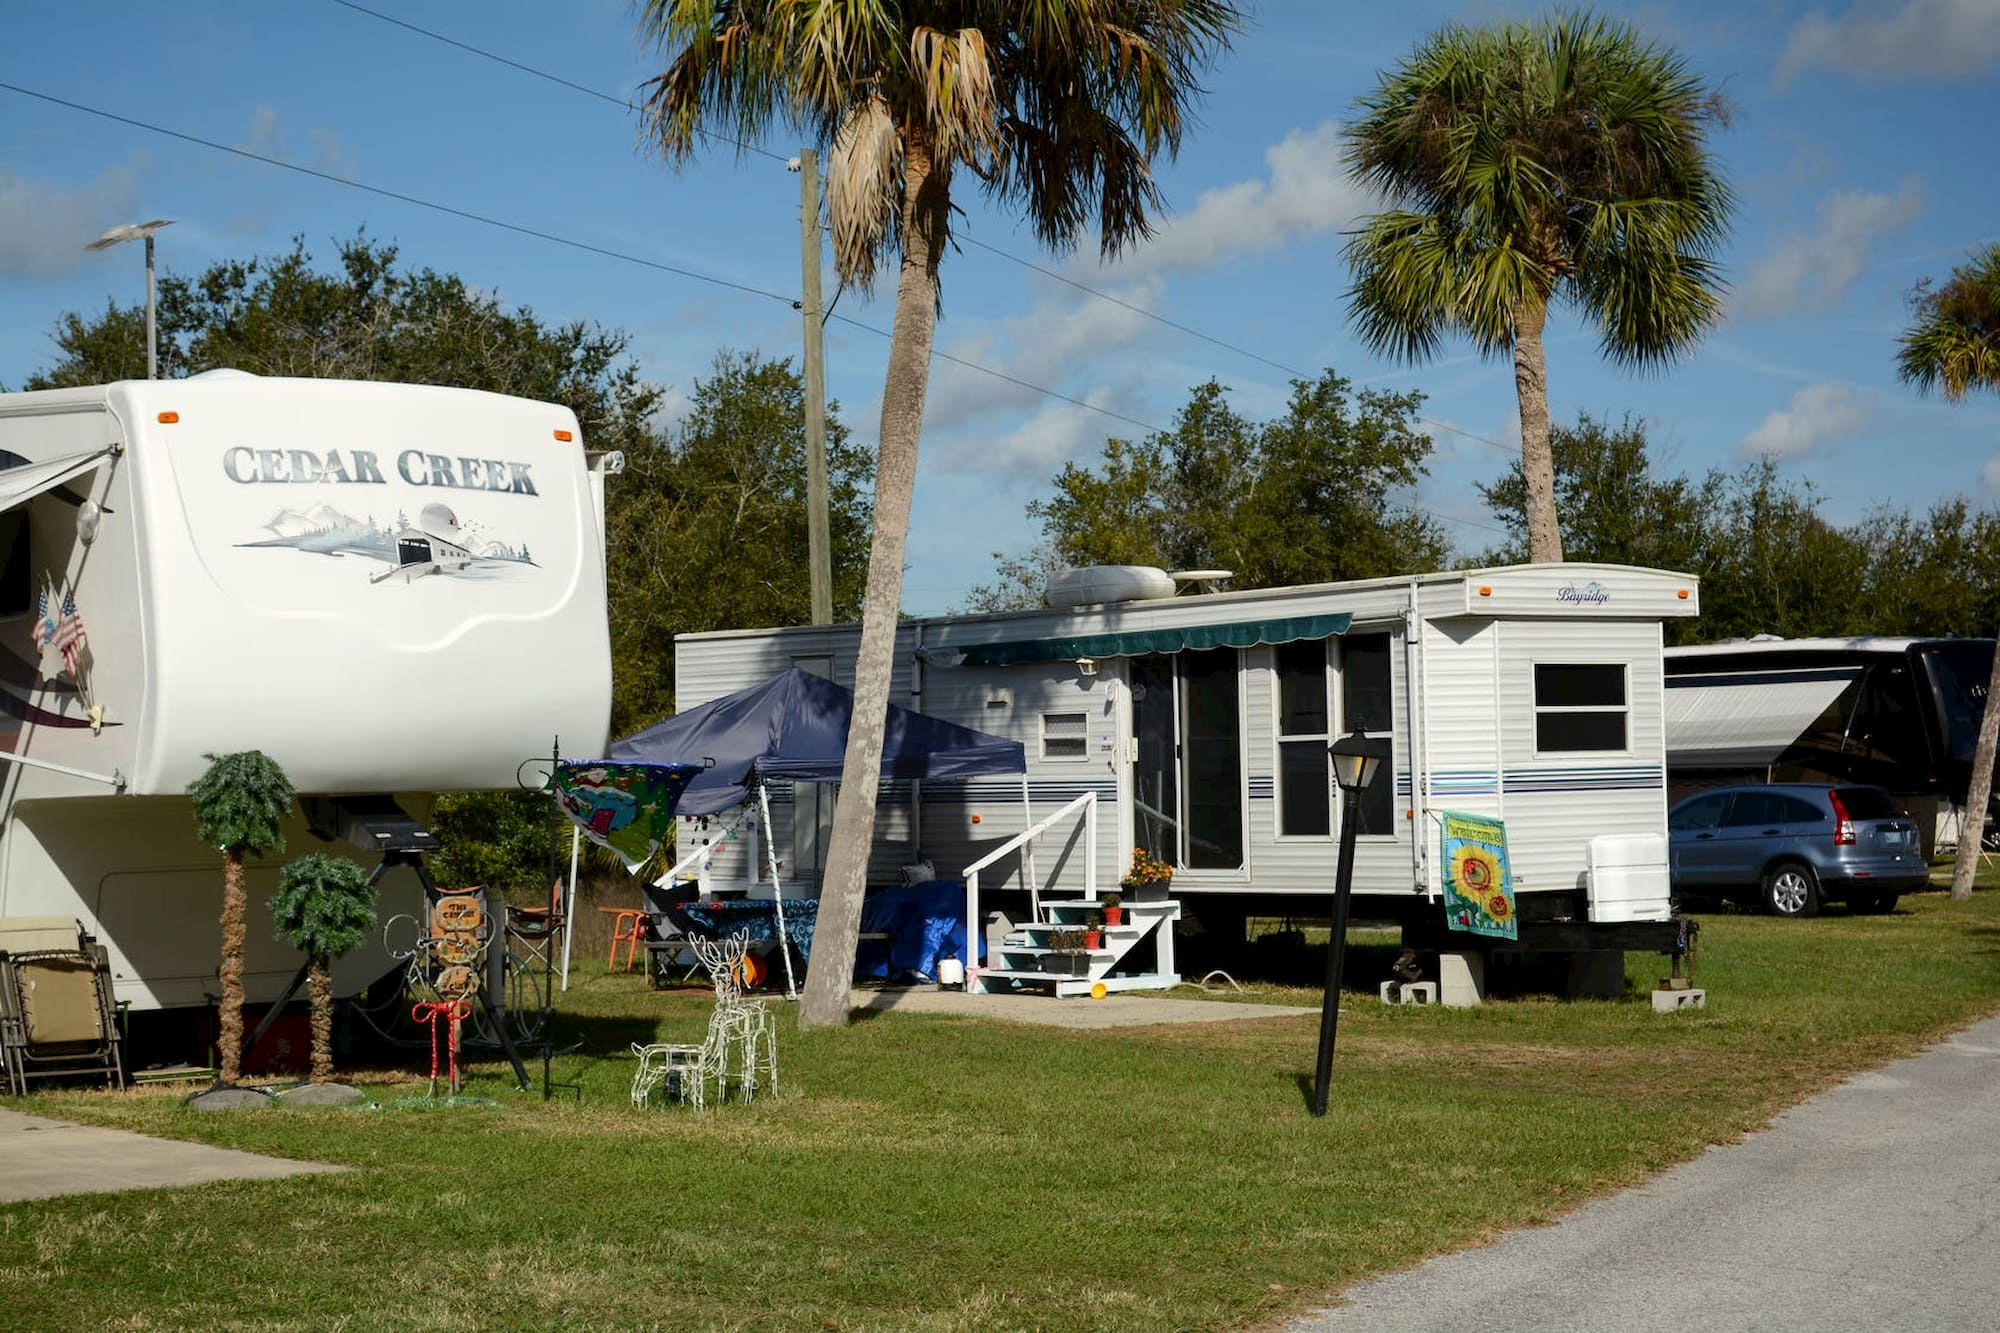 RVs and trailers parked in a row on green grass with palm trees in the background.